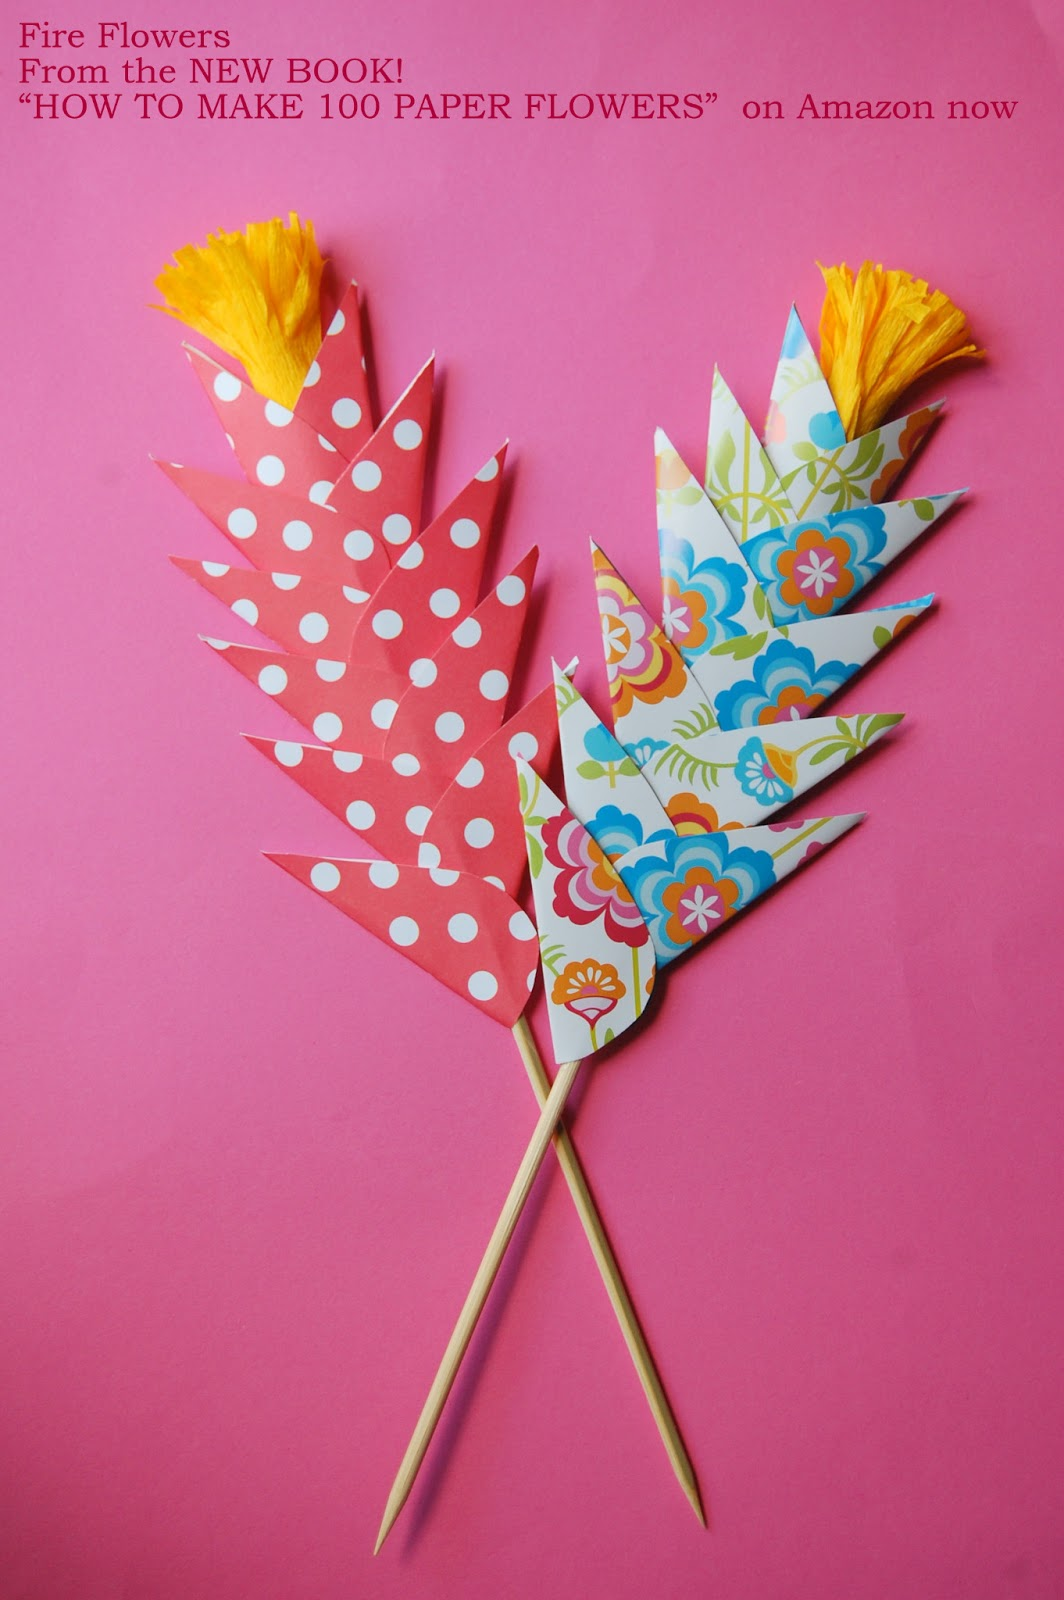 Easy paper flowers for kids diy fire flowers handmade paper fire flowers easy paper flowers tutorials kids mightylinksfo